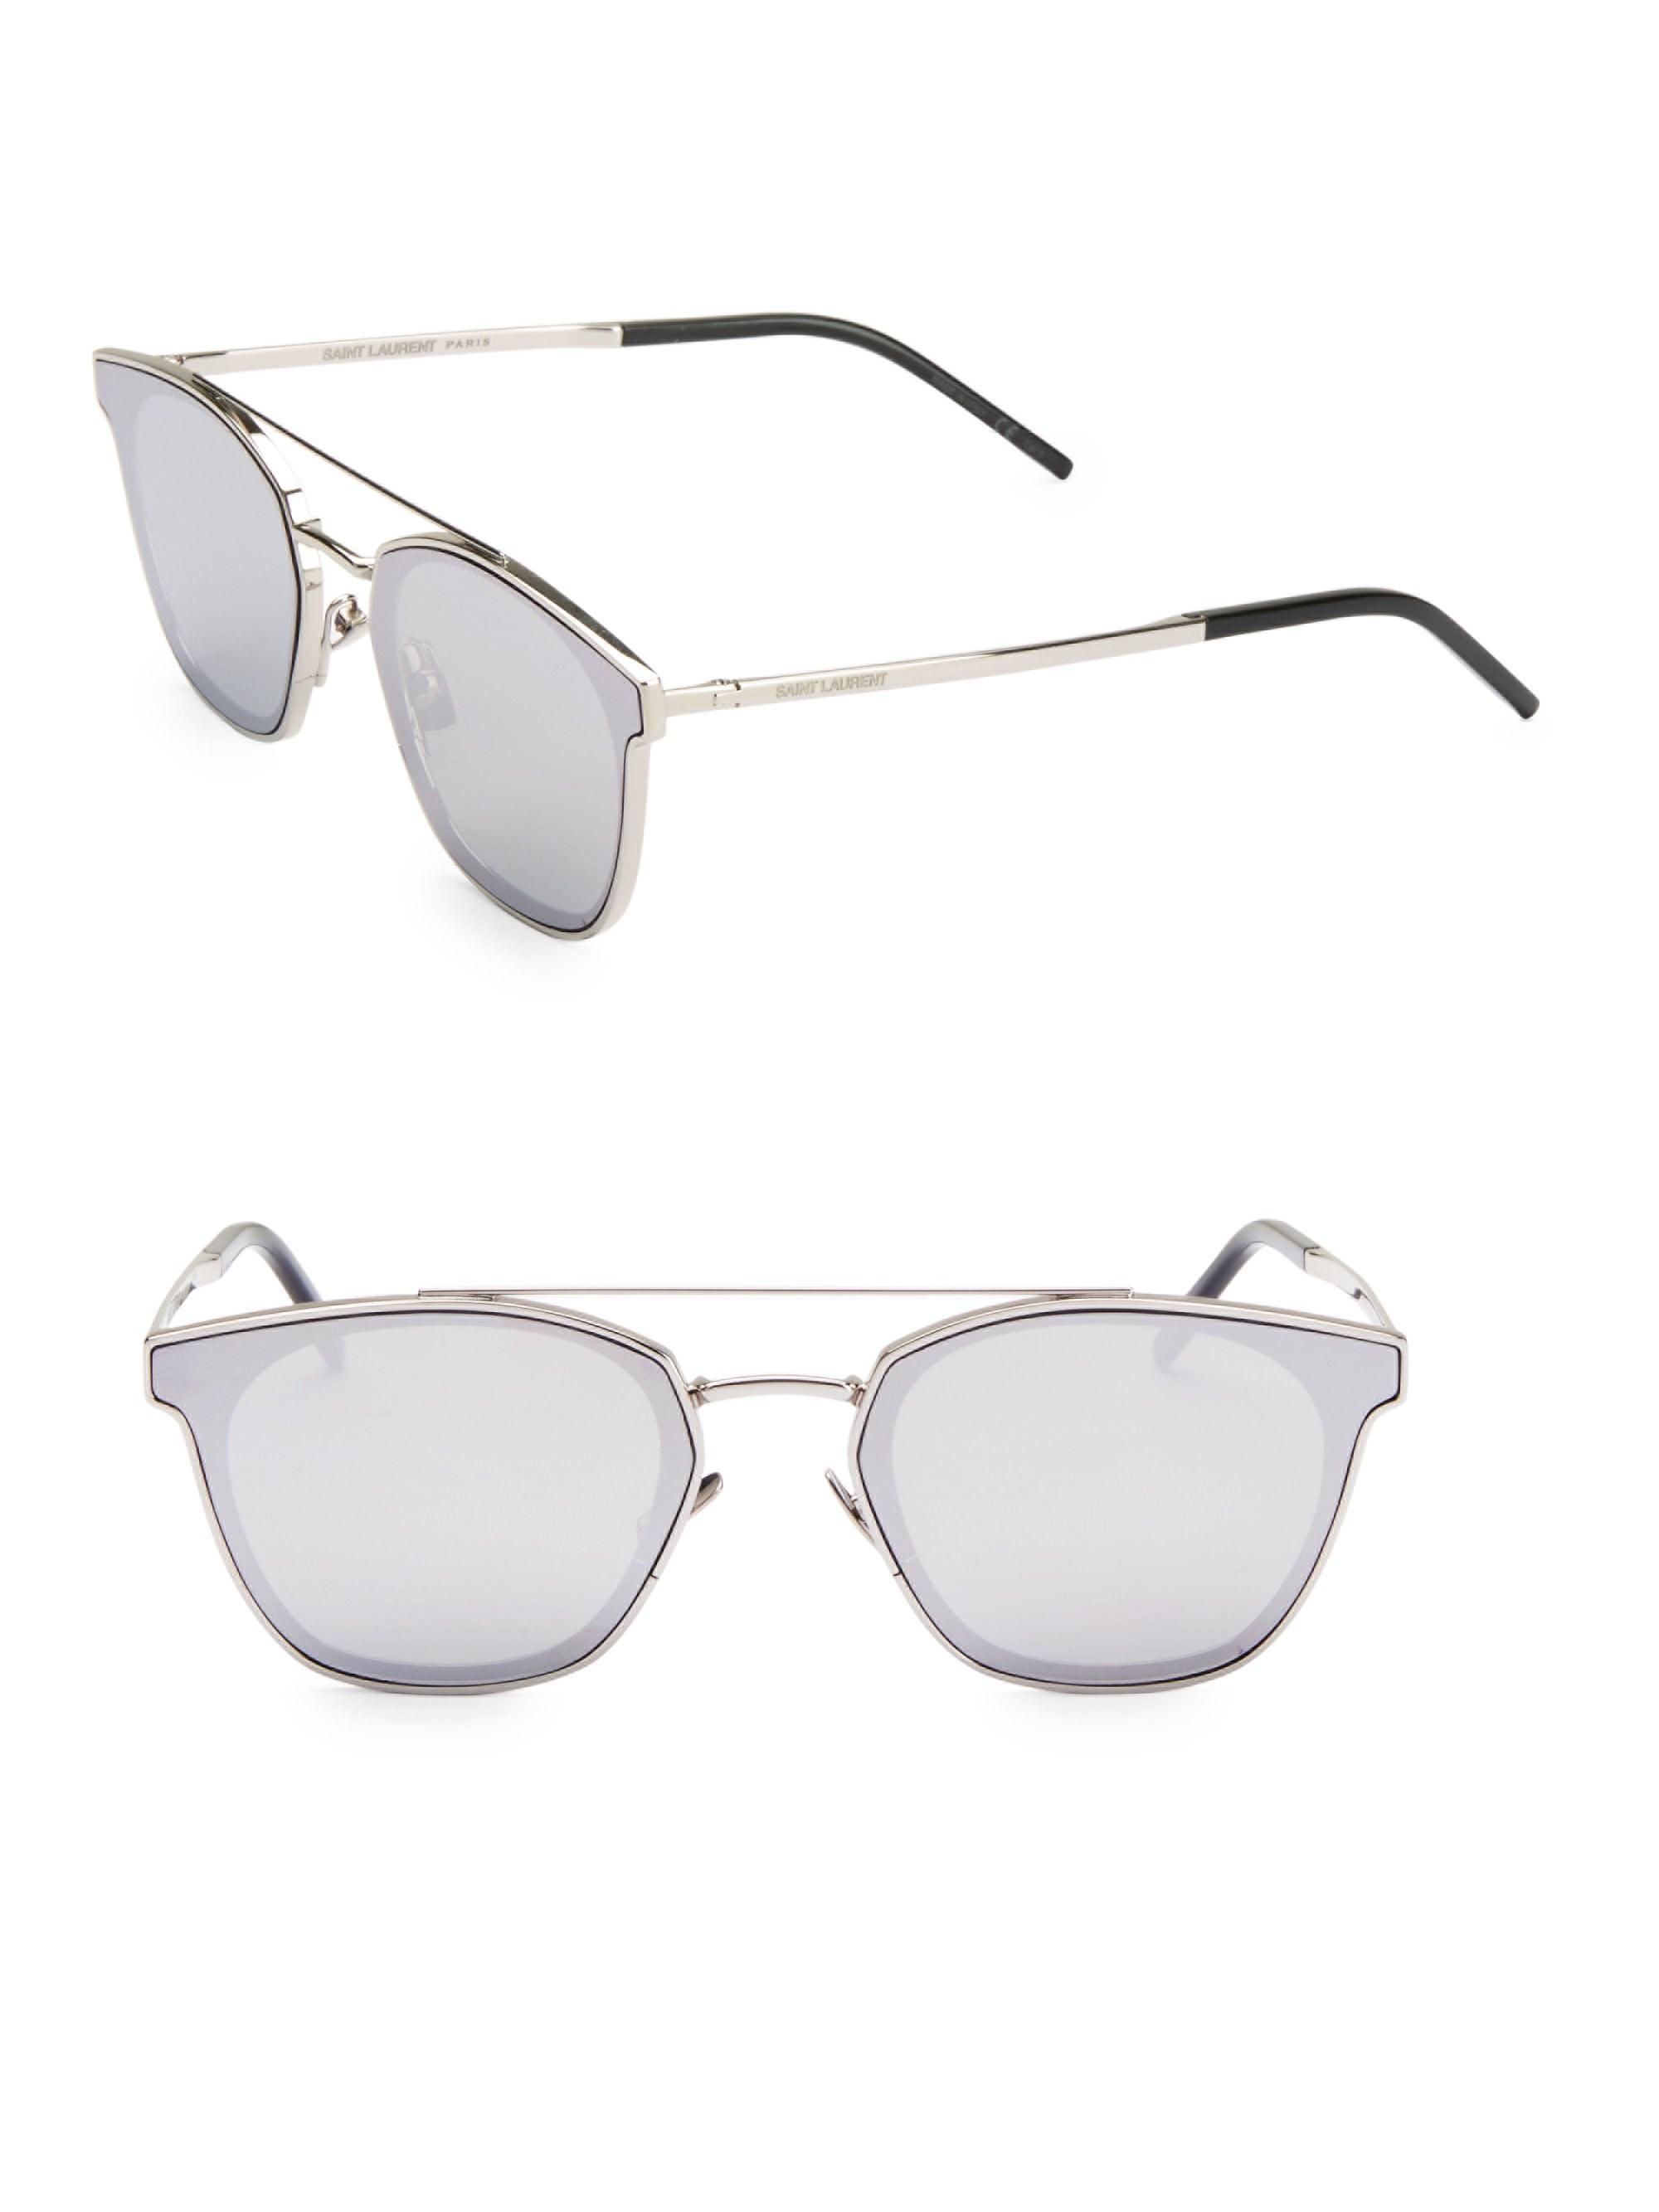 eb13da8f43 Lyst - Saint Laurent Men s 61mm Unisex Square Sunglasses - Silver in ...